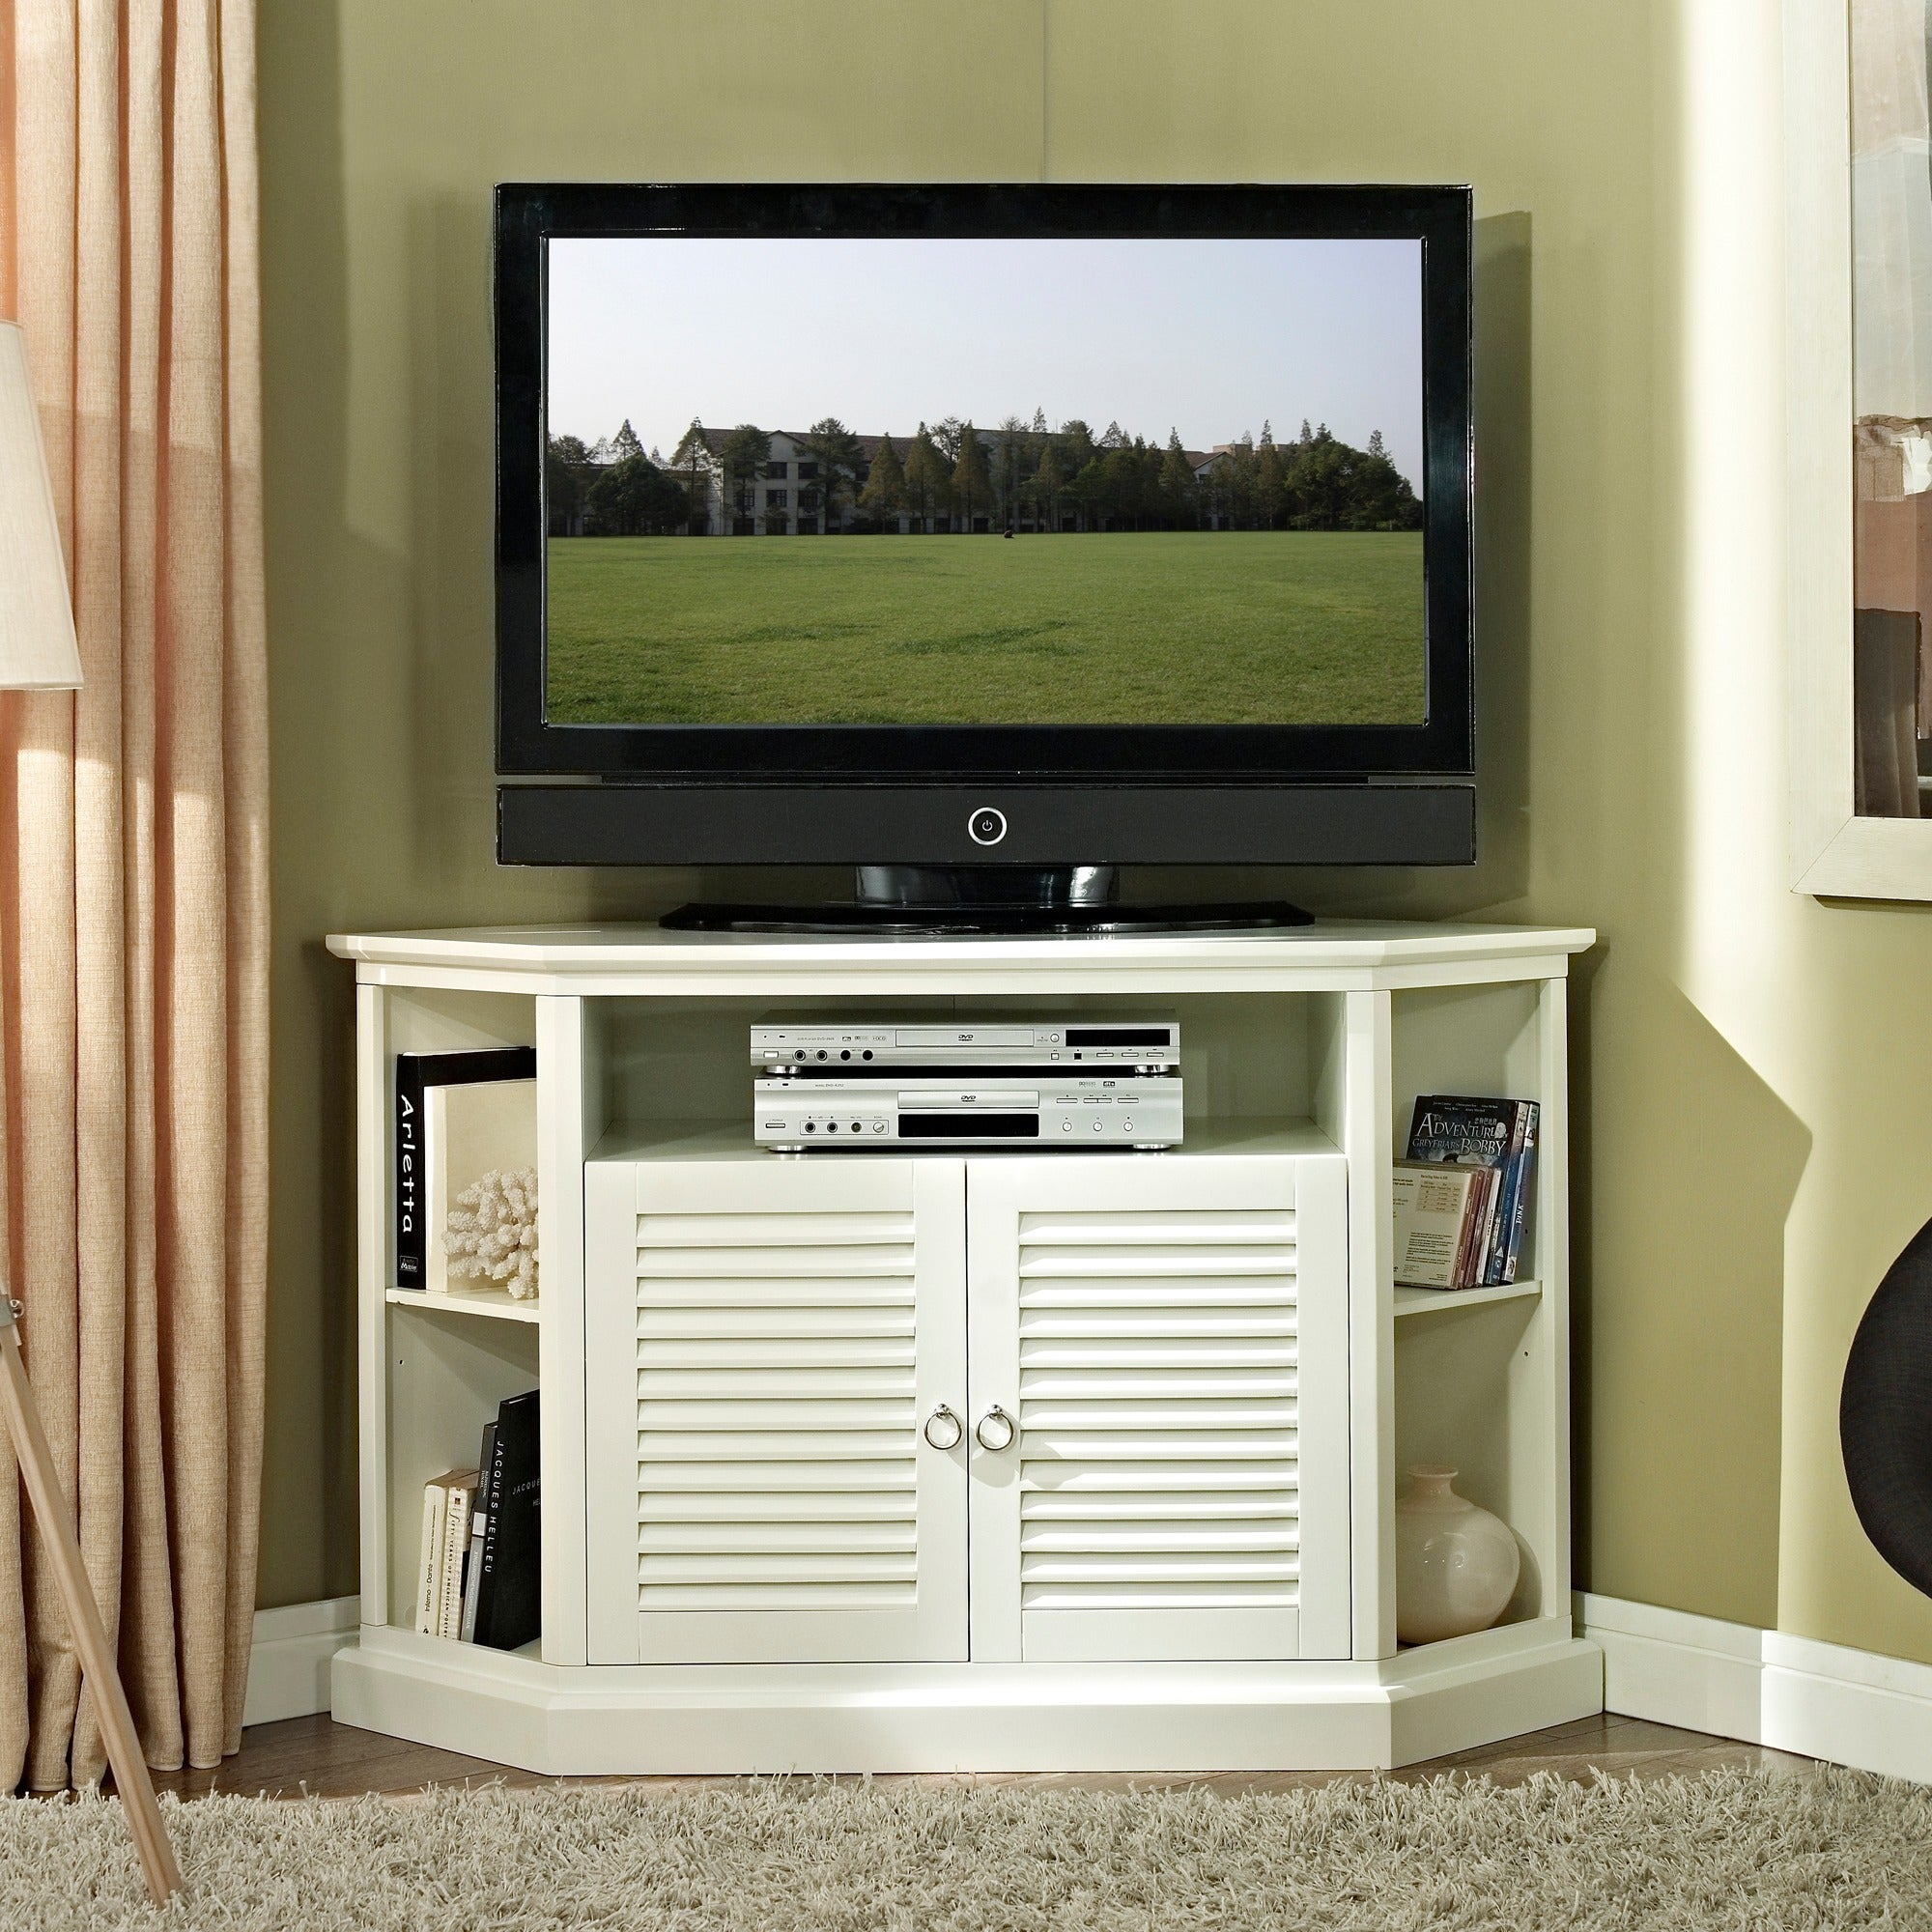 Shop Copper Grove Cardinal 52 Inch White Wood Corner Tv Stand On